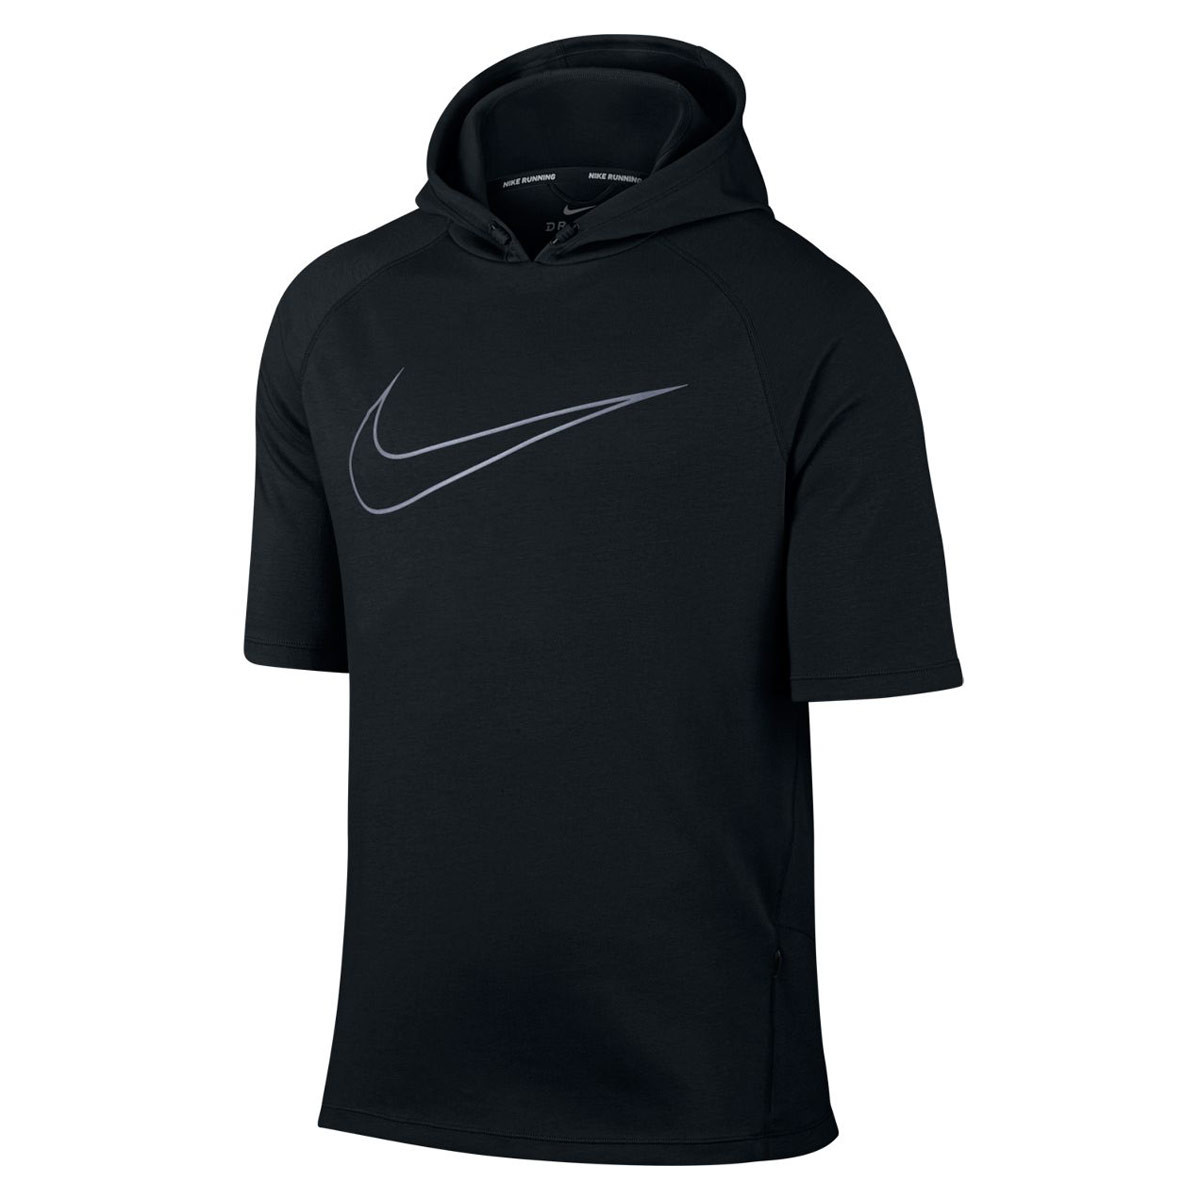 f907230f0af7 Nike Running Hoodie - Sweatshirts   Hoodies for Men - Black